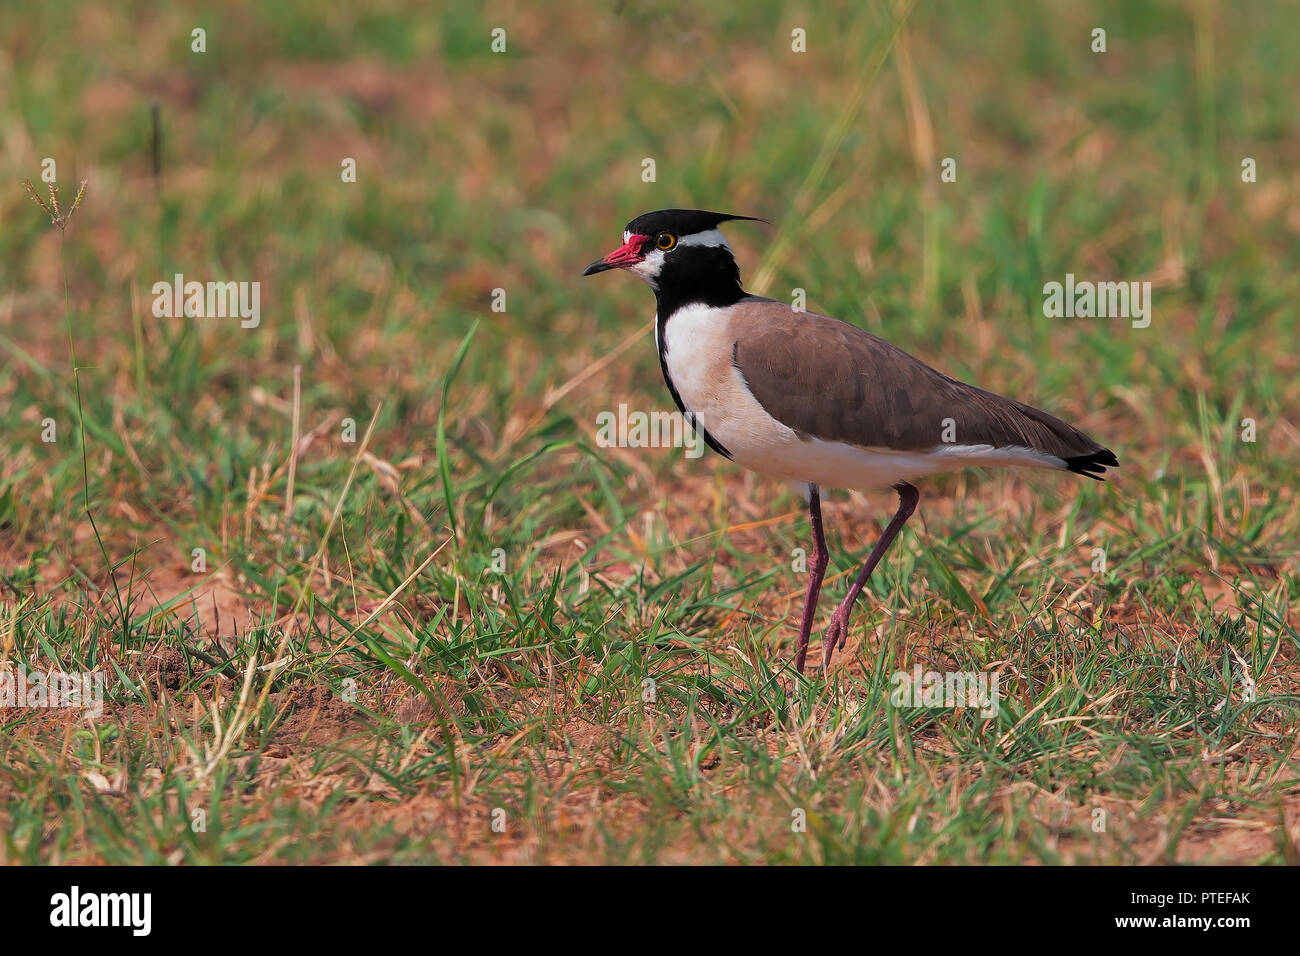 Black-headed Lapwing - Stock Image